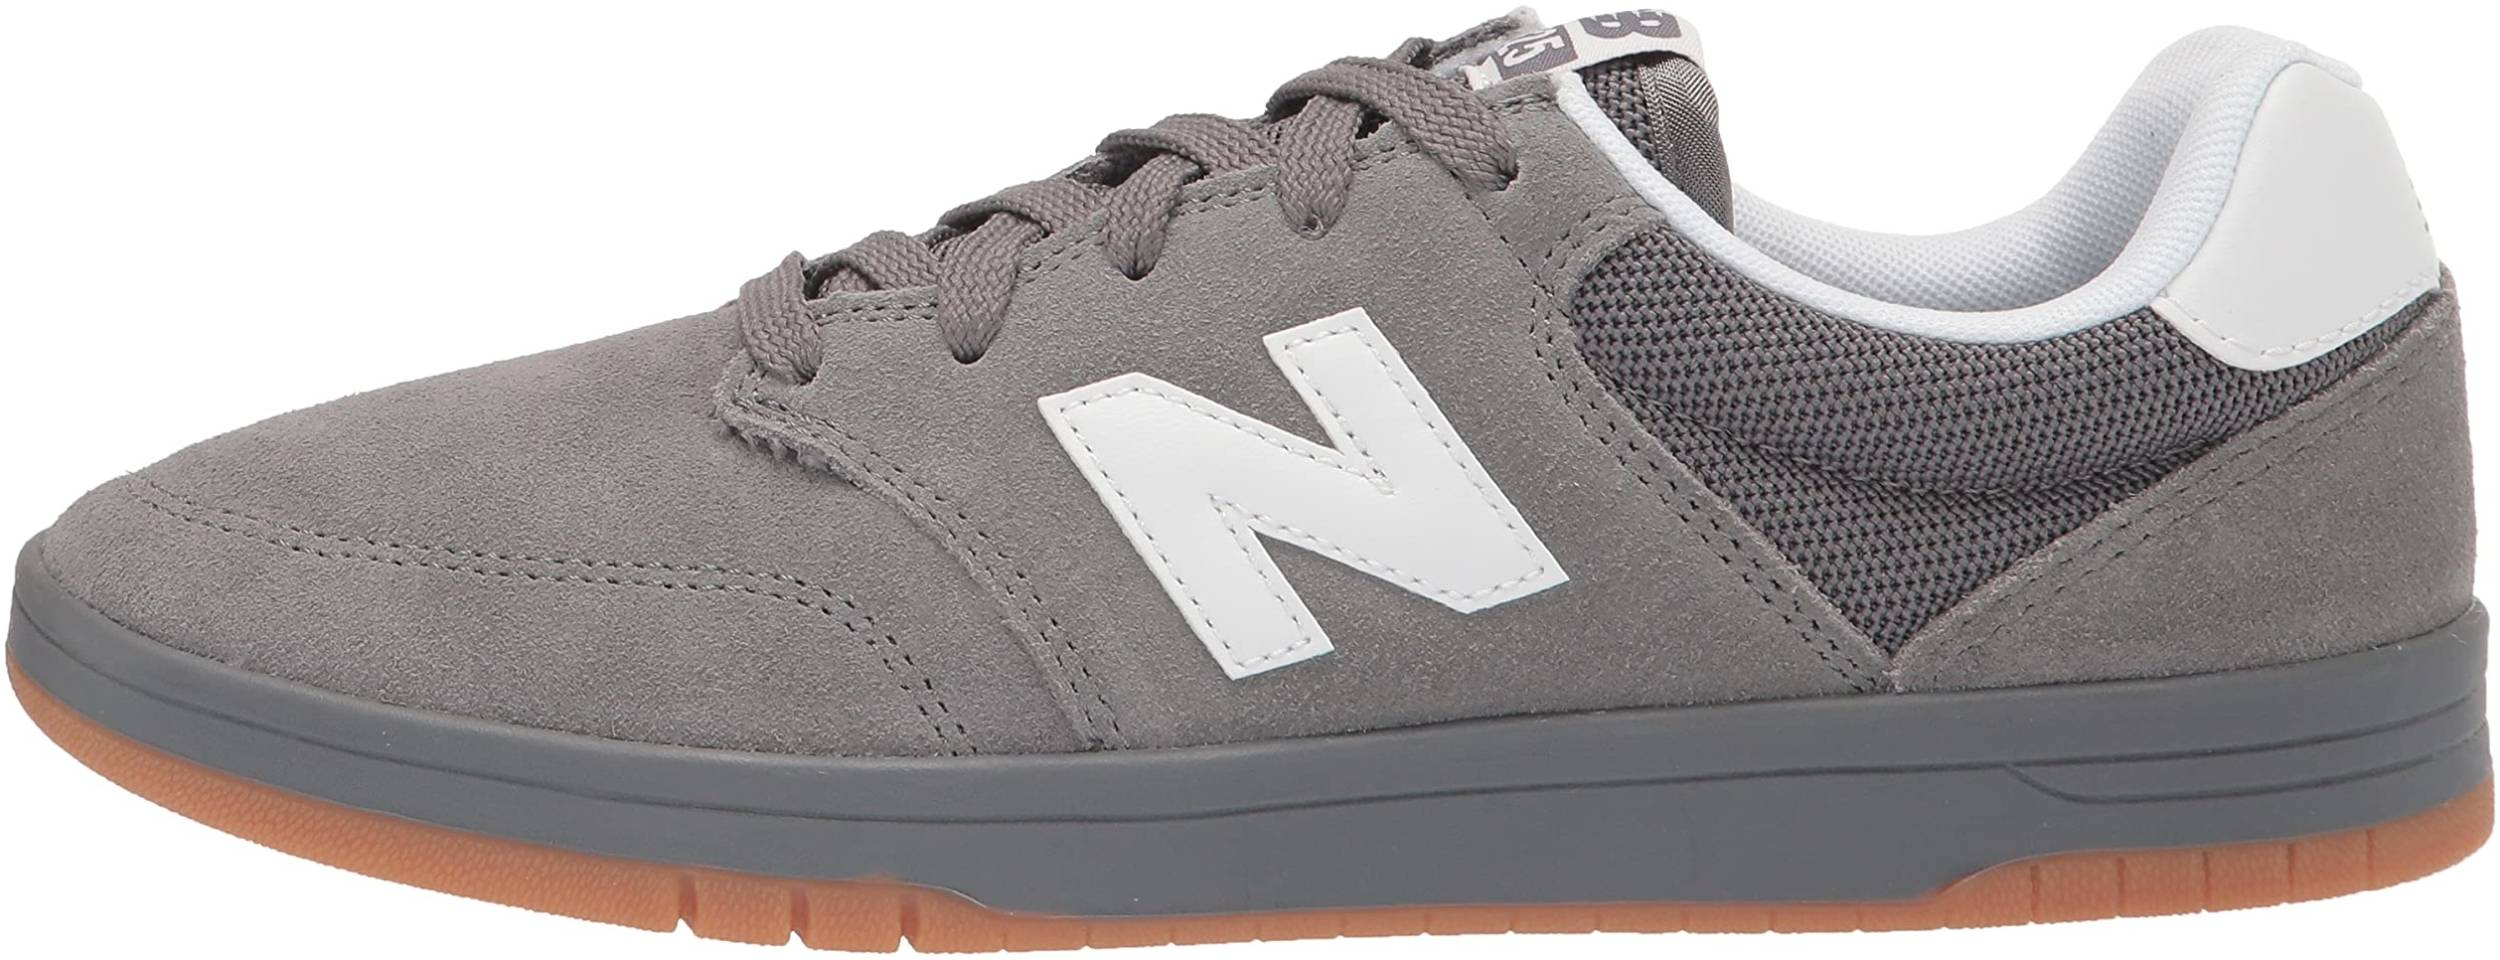 New Balance All Coasts 425 sneakers in 5 colors (only $20) | RunRepeat